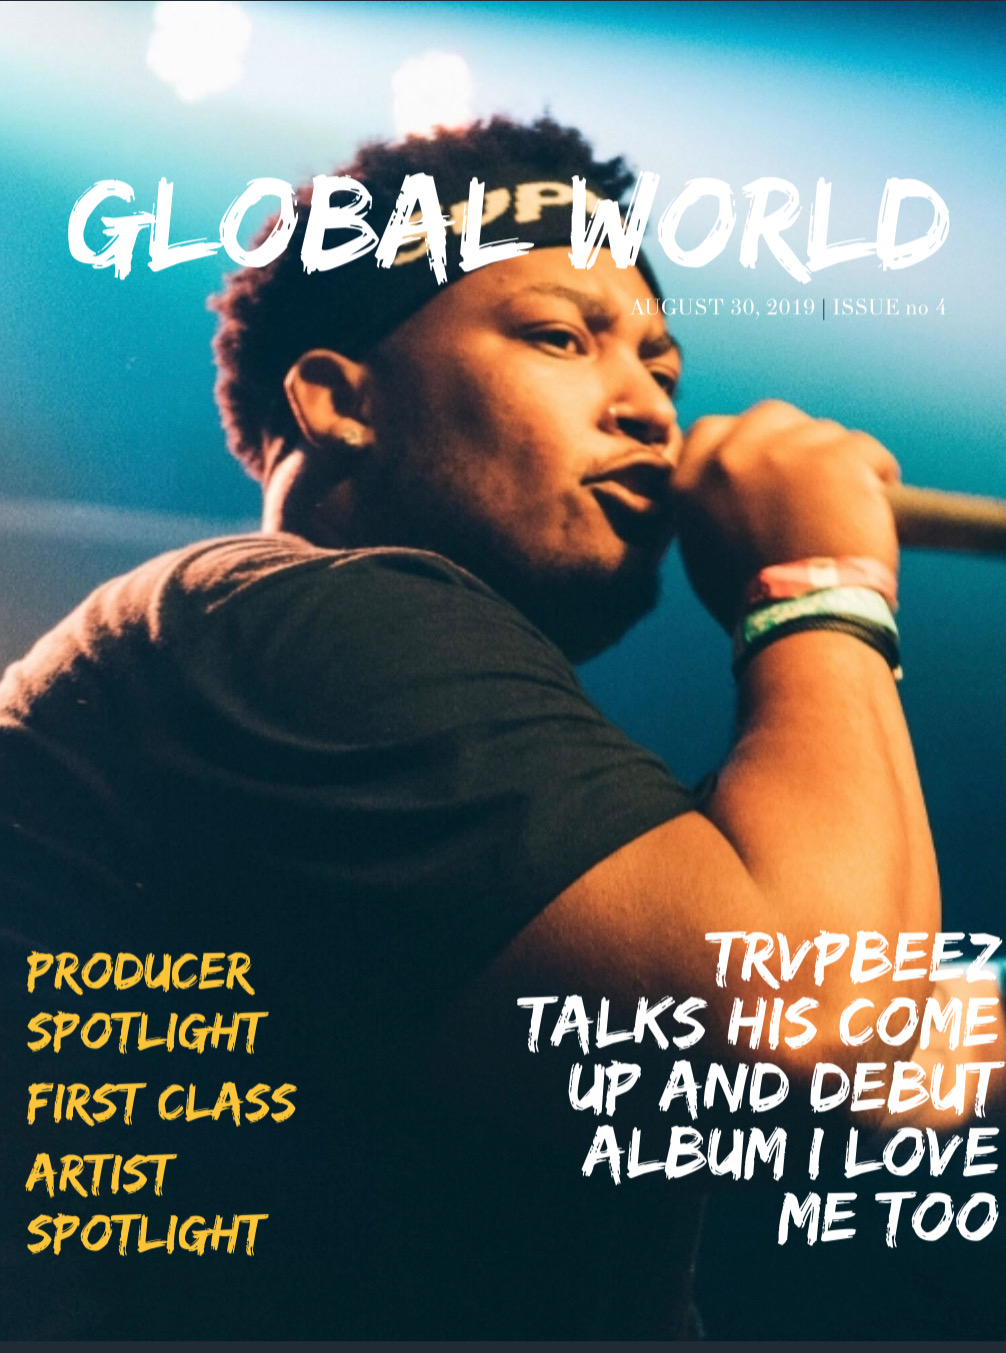 Global World Magazine Issue 4 Featuring: Trvpbeez, Sinatra Royale, Benjamin Earl Turner, Criss Jrumz, Da$h, V Don, Gwopped Up Speedy, HitKidd, Tia P., and This Is Love Film,